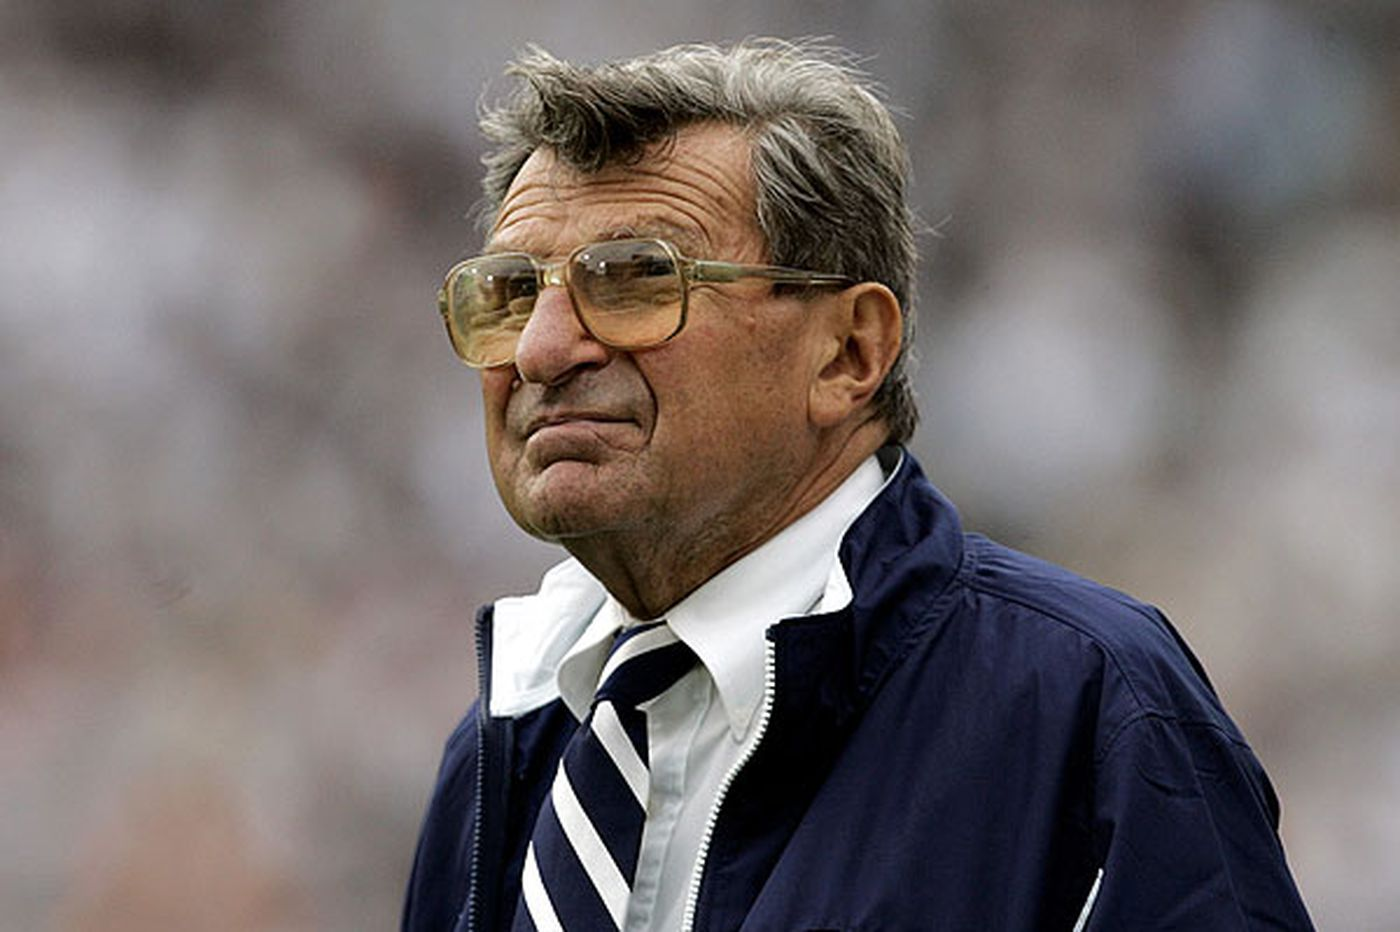 Foes of Paterno firing play role in Corbett loss